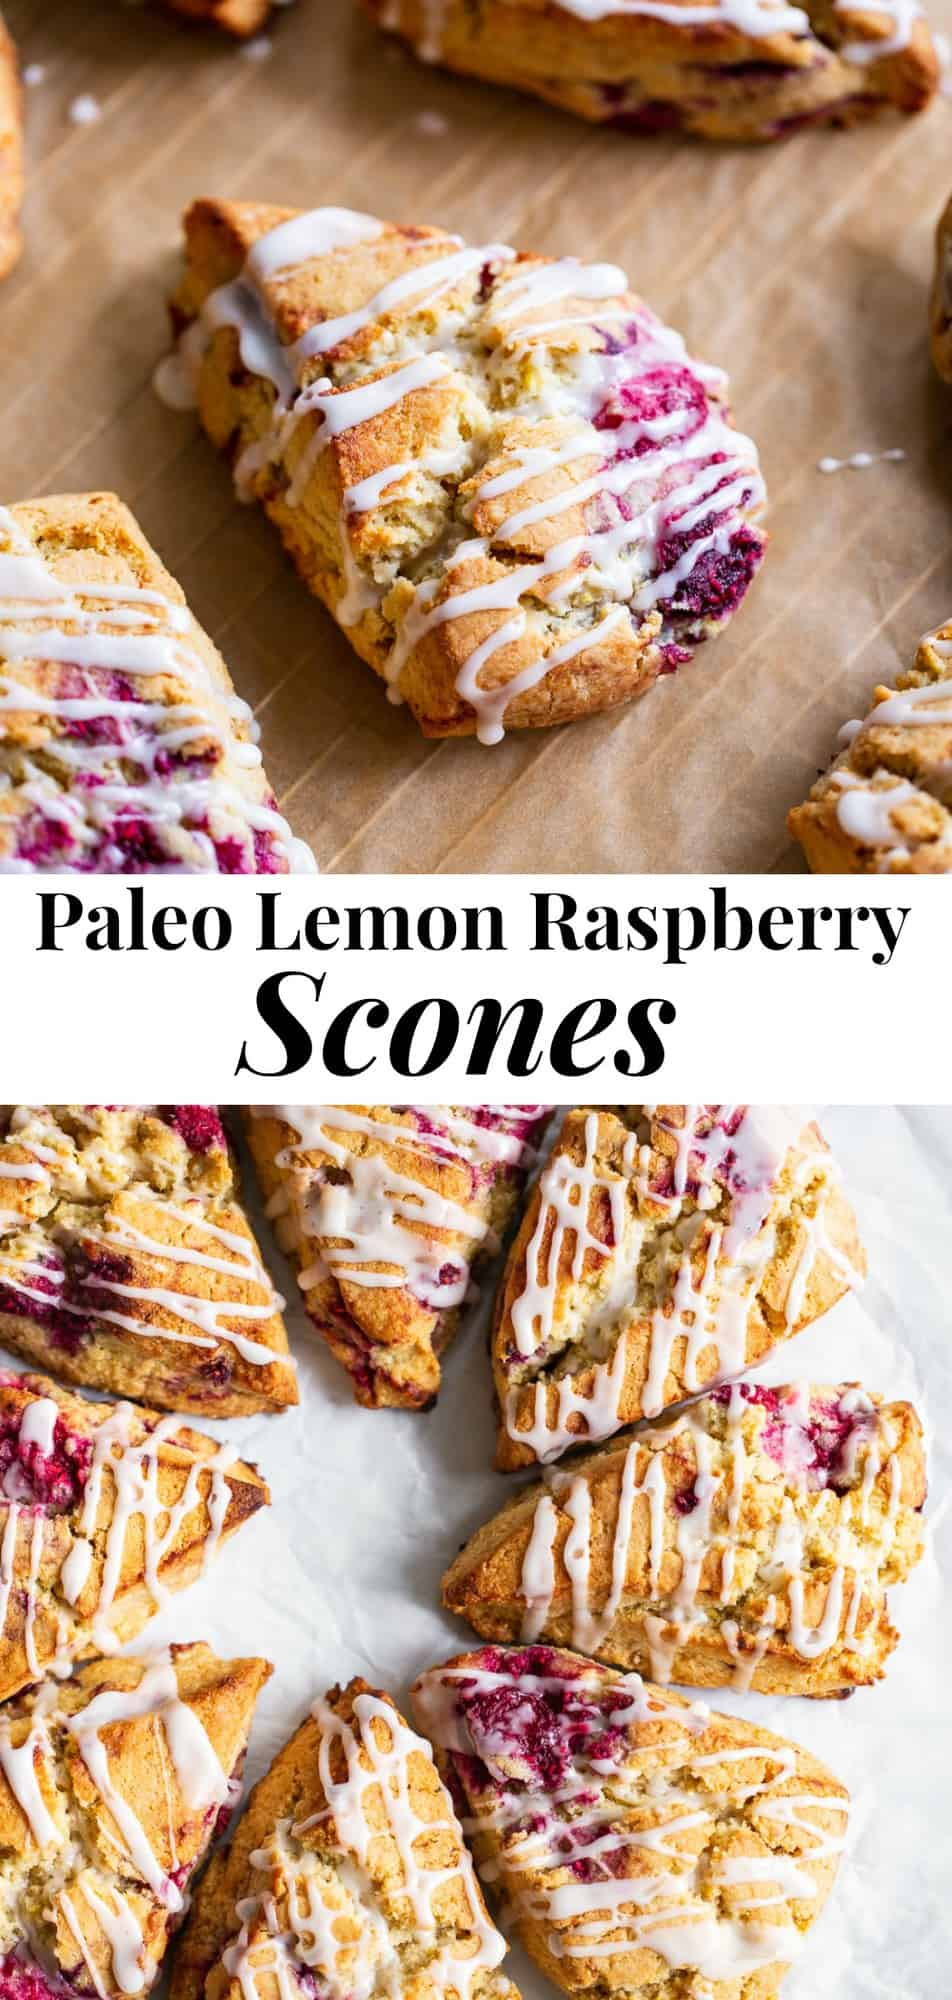 These raspberry lemon scones are perfectly flaky, with rich buttery flavor and are packed with lemon and sweet juicy raspberries.  The lemon icing makes them out of this world delicious! The perfect healthier brunch treat, these scones are paleo, dairy free, gluten free and irresistible! #paleo #glutenfree #scones #paleobaking #healthybaking